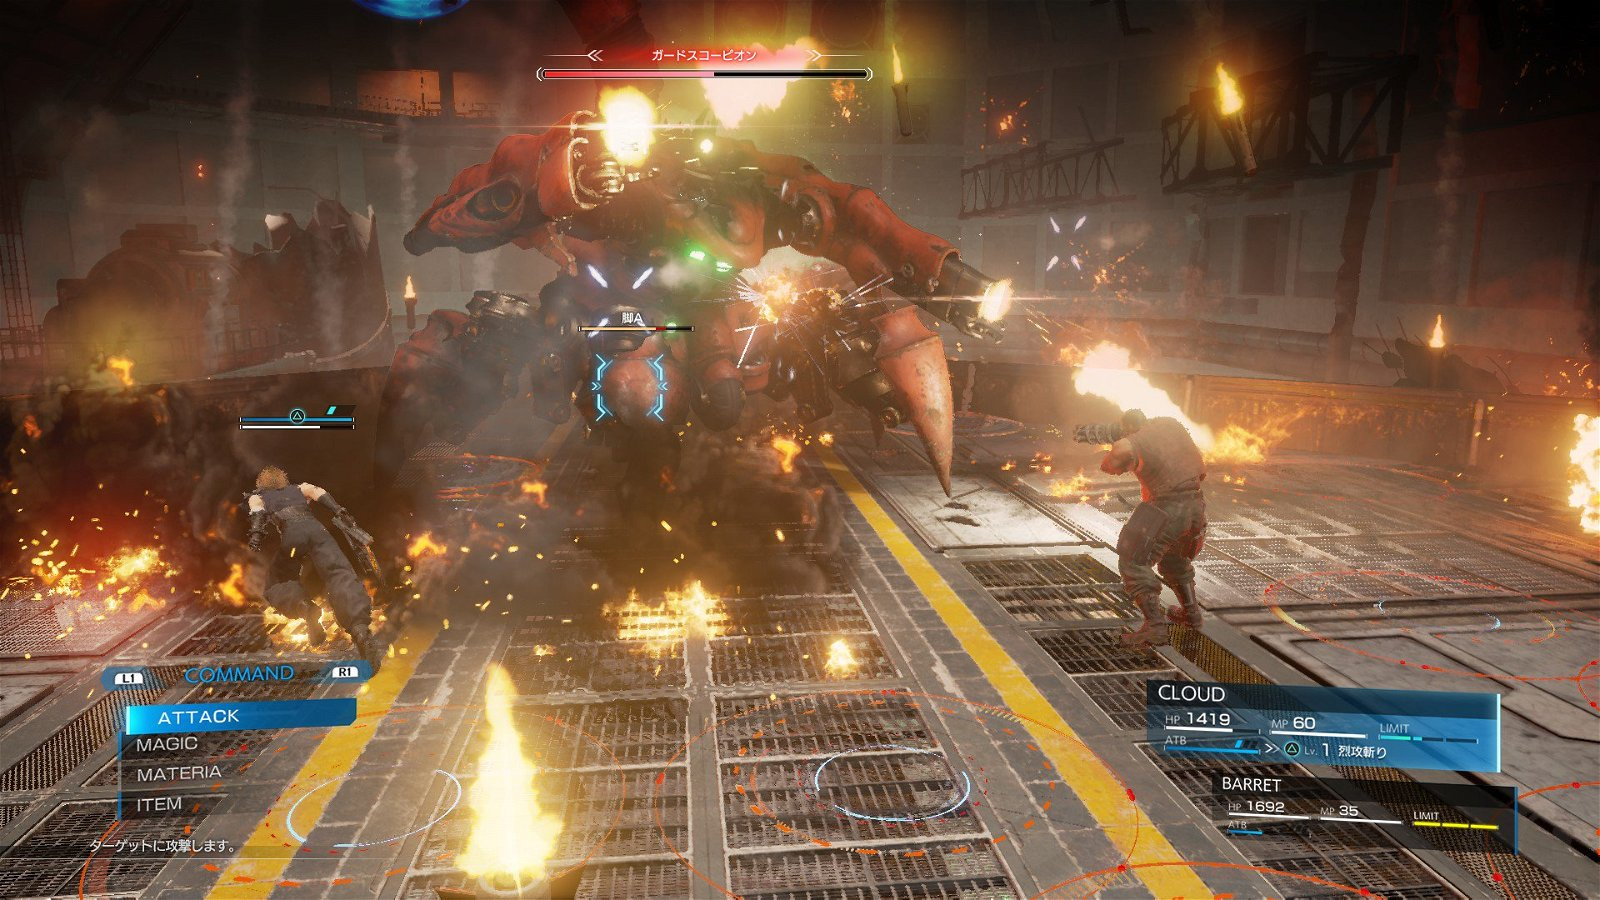 Don't worry, cover isn't required in Final Fantasy VII Remake